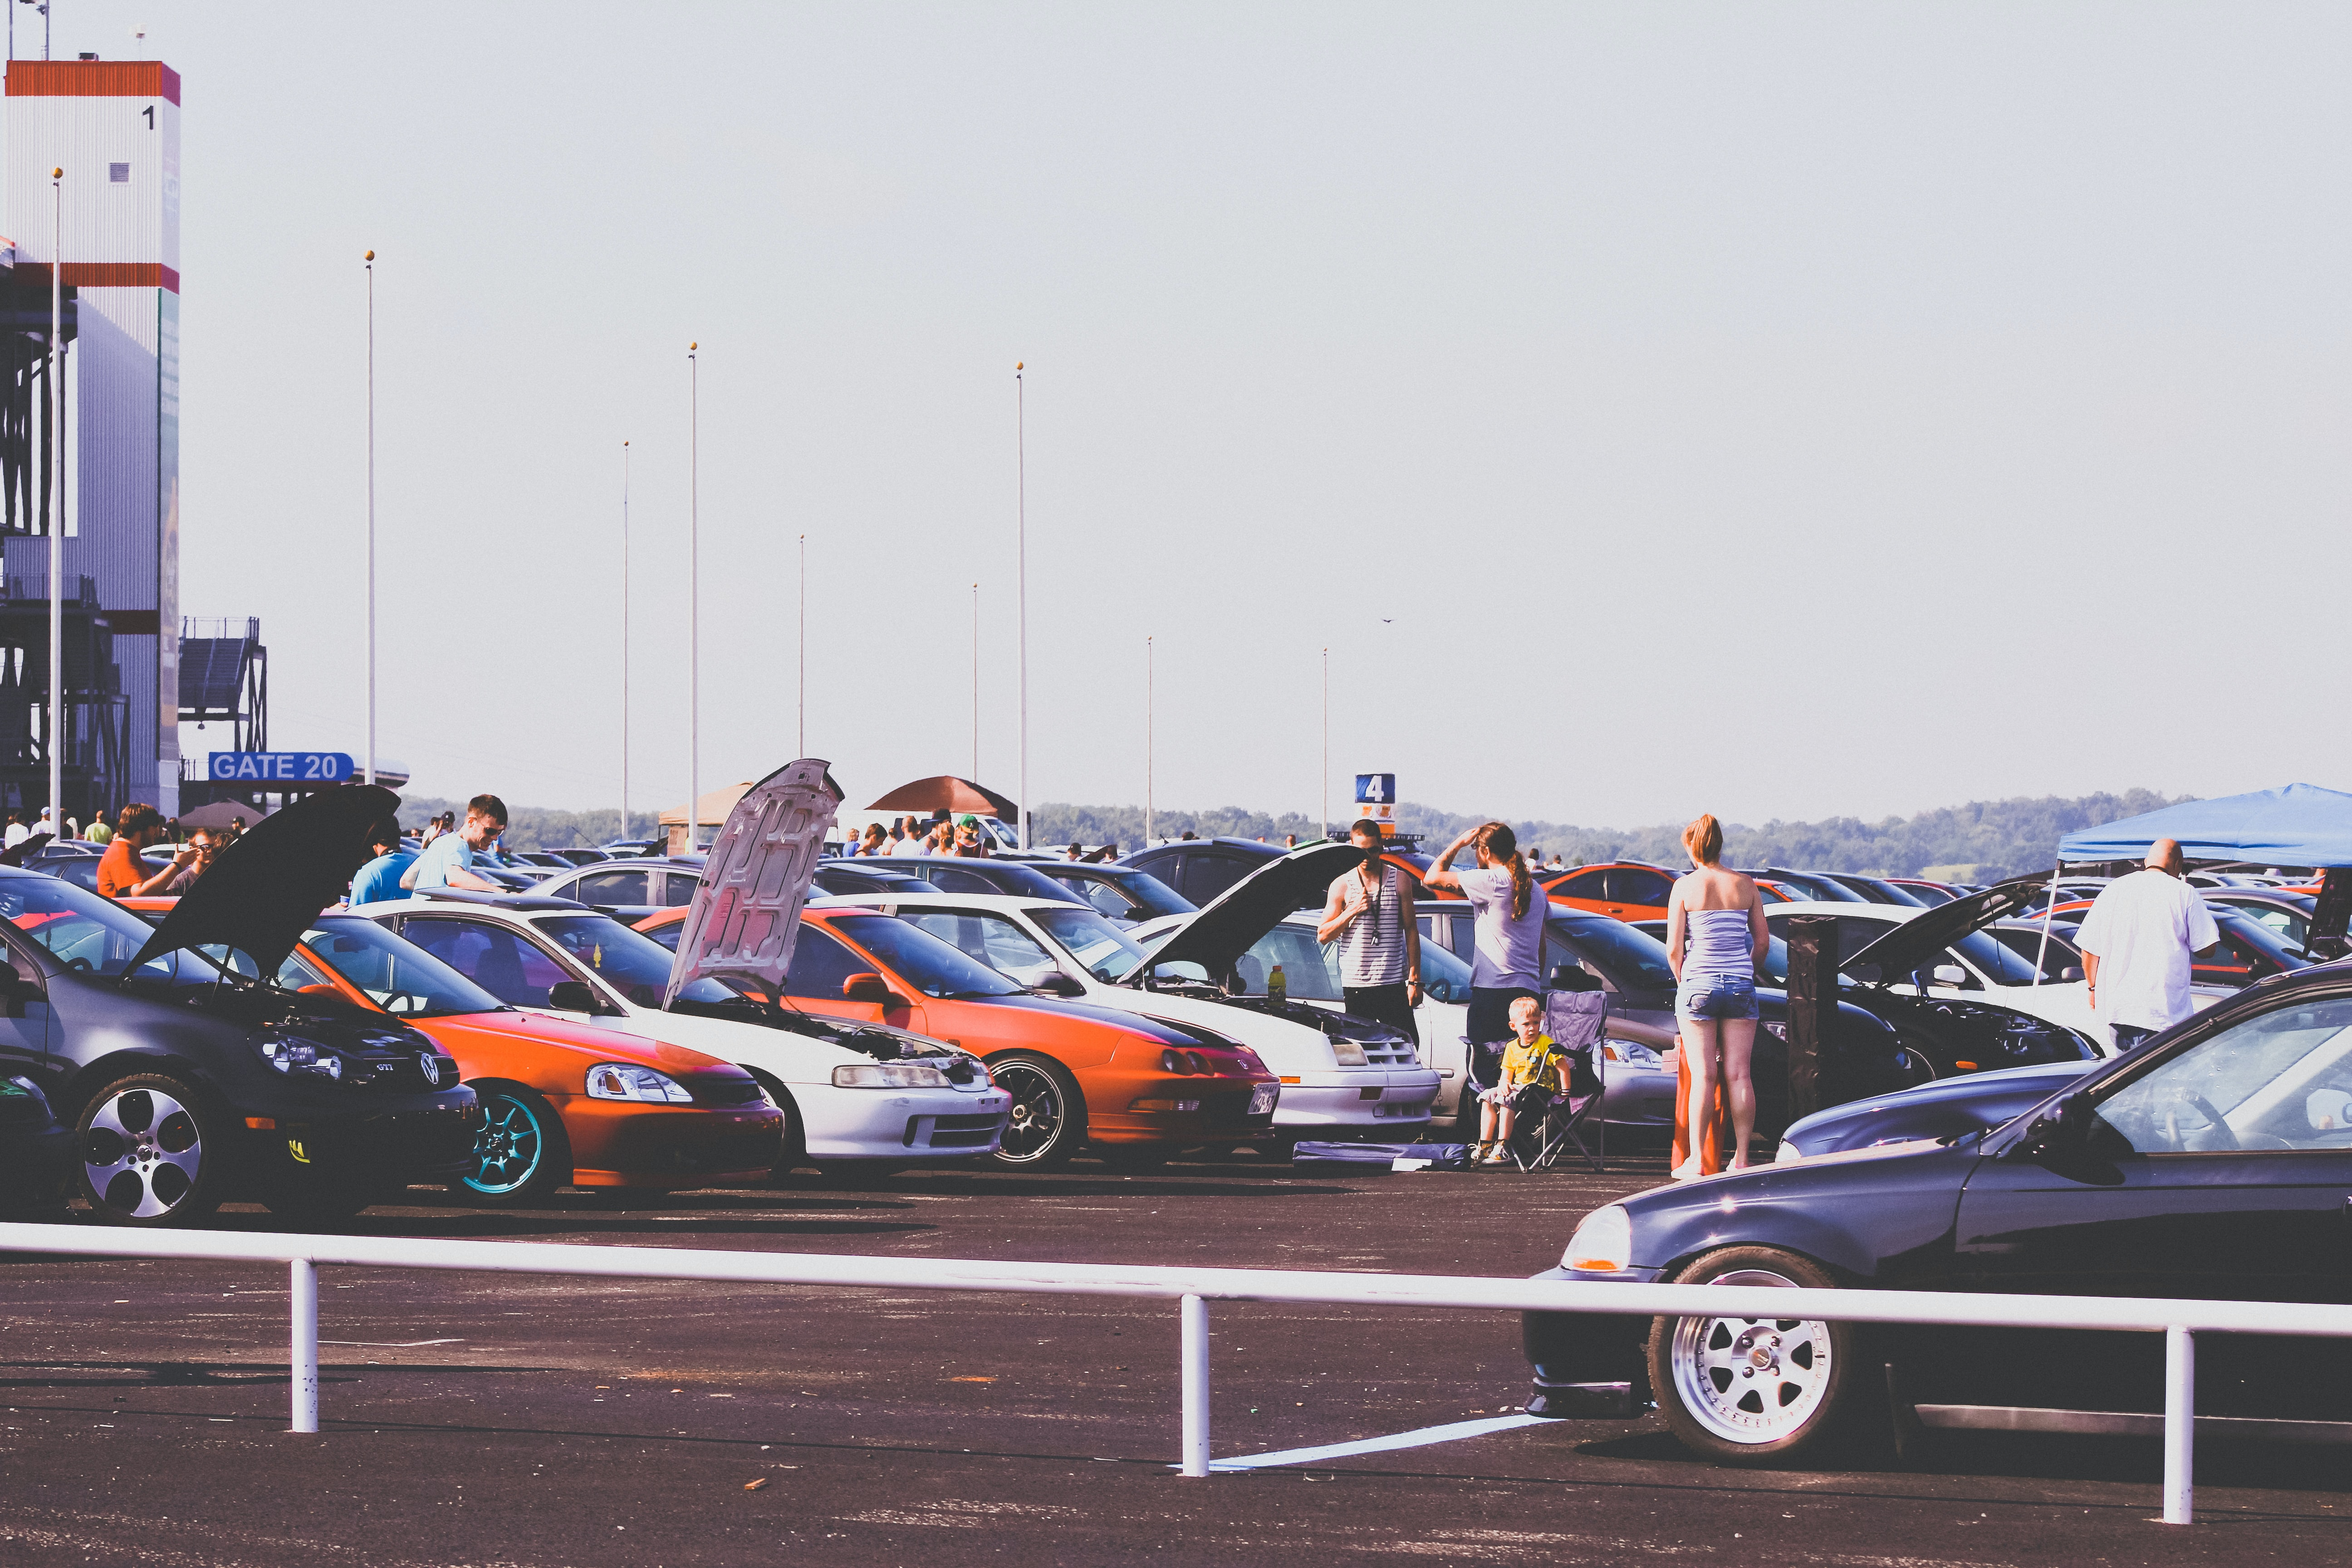 People looking at cars parked in parking lot at a car show